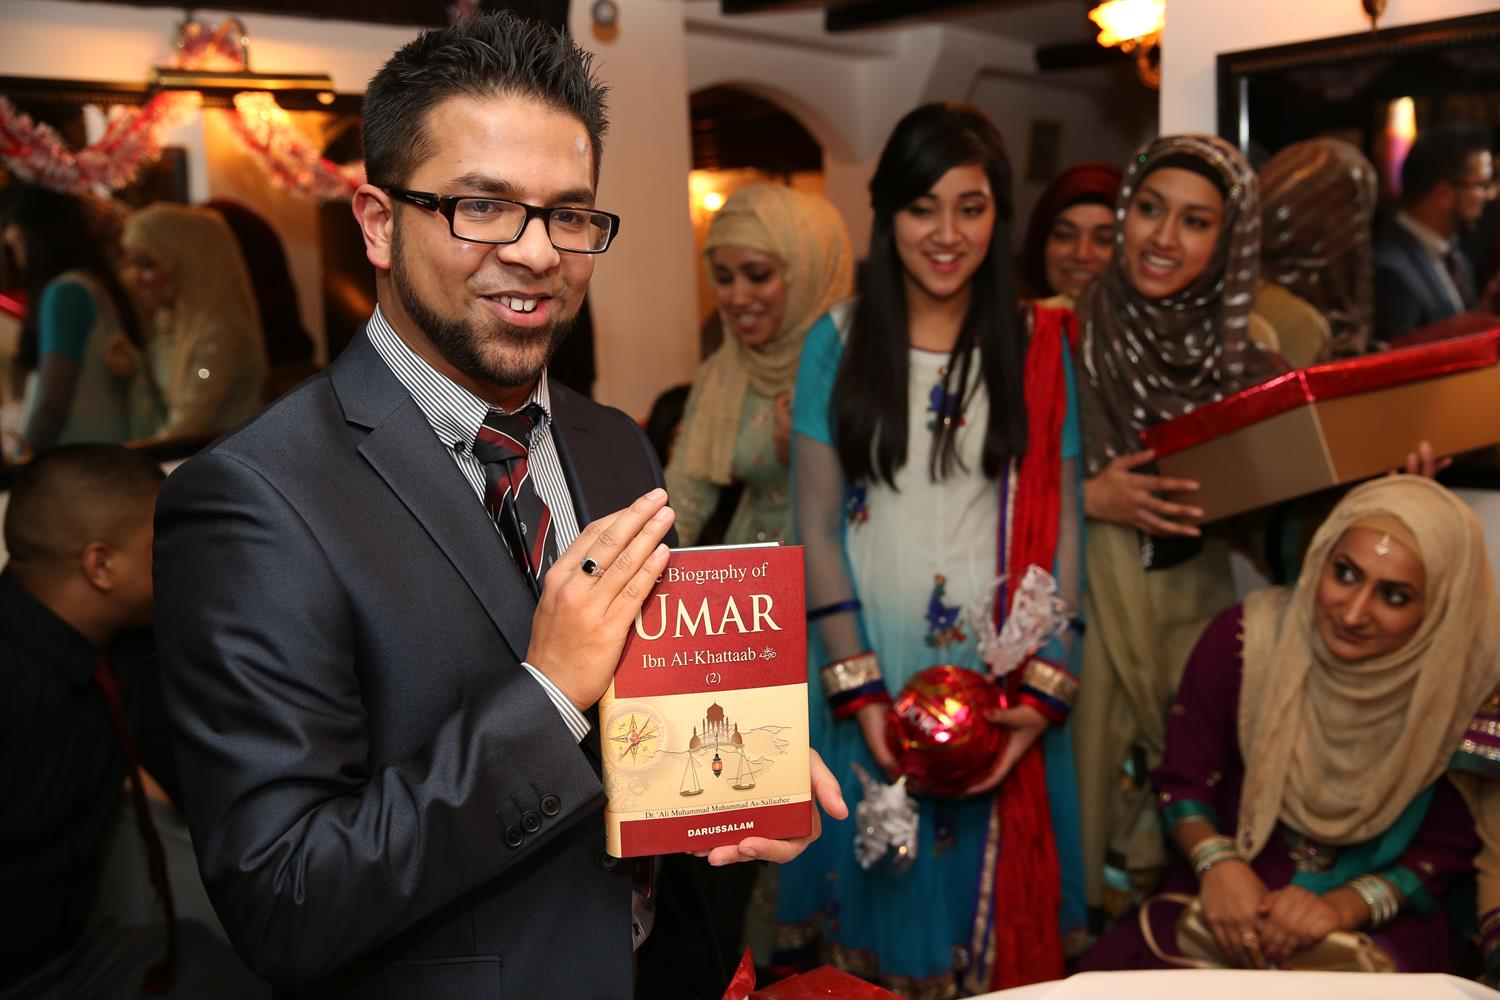 Bengali Engagement Photography Umar Ibn Al-Khattab book gift in London by MAKSAM Photography